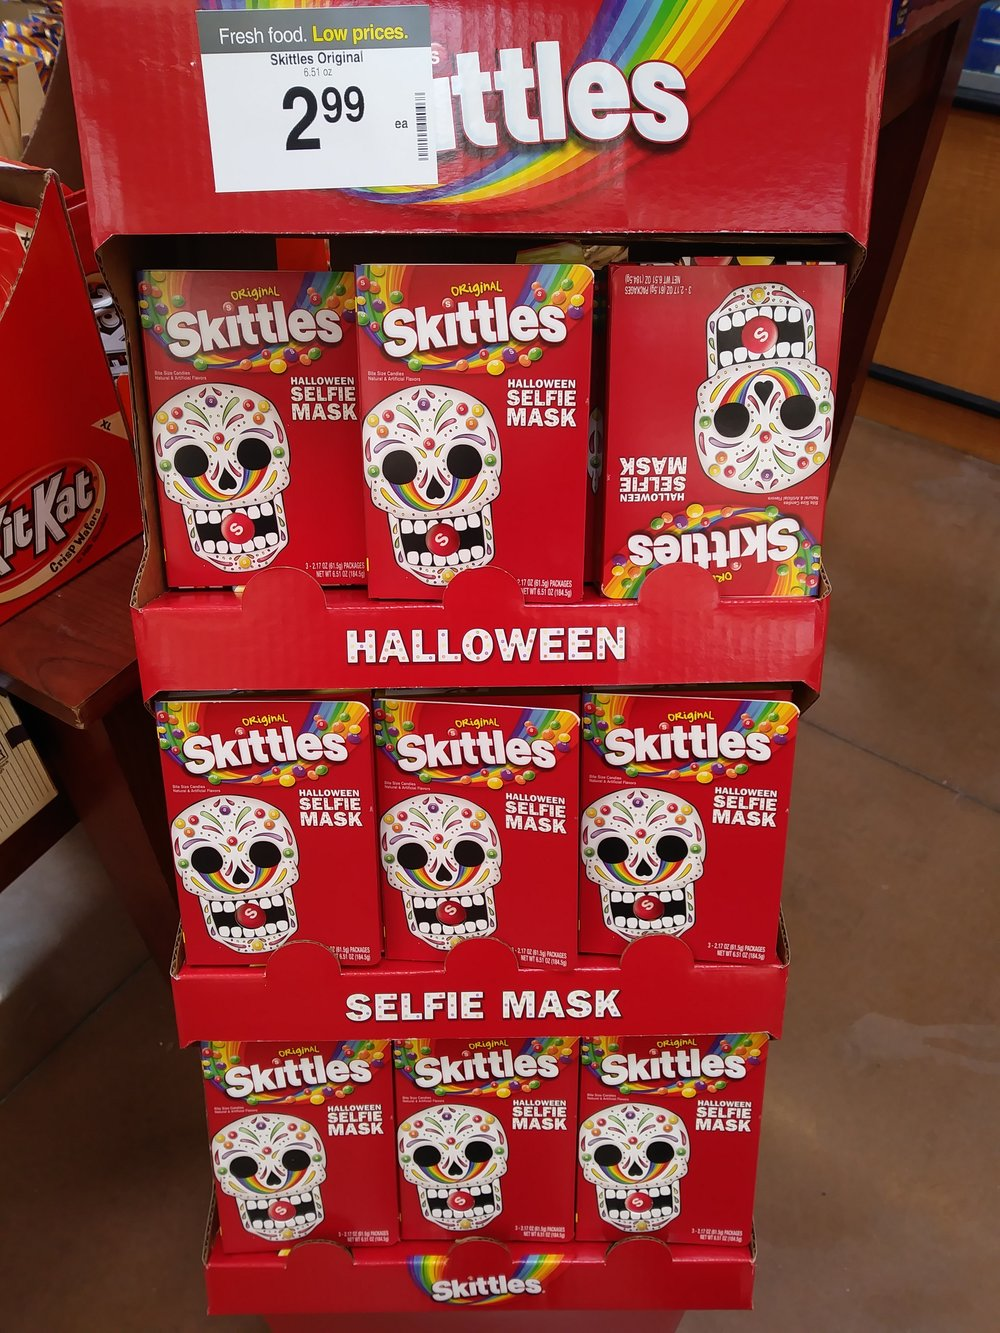 Ahead of Halloween, Wrigley is pushing an actual Skittles Selfie Mask in stores. This display was found at a Kroger just outside Atlanta, GA.